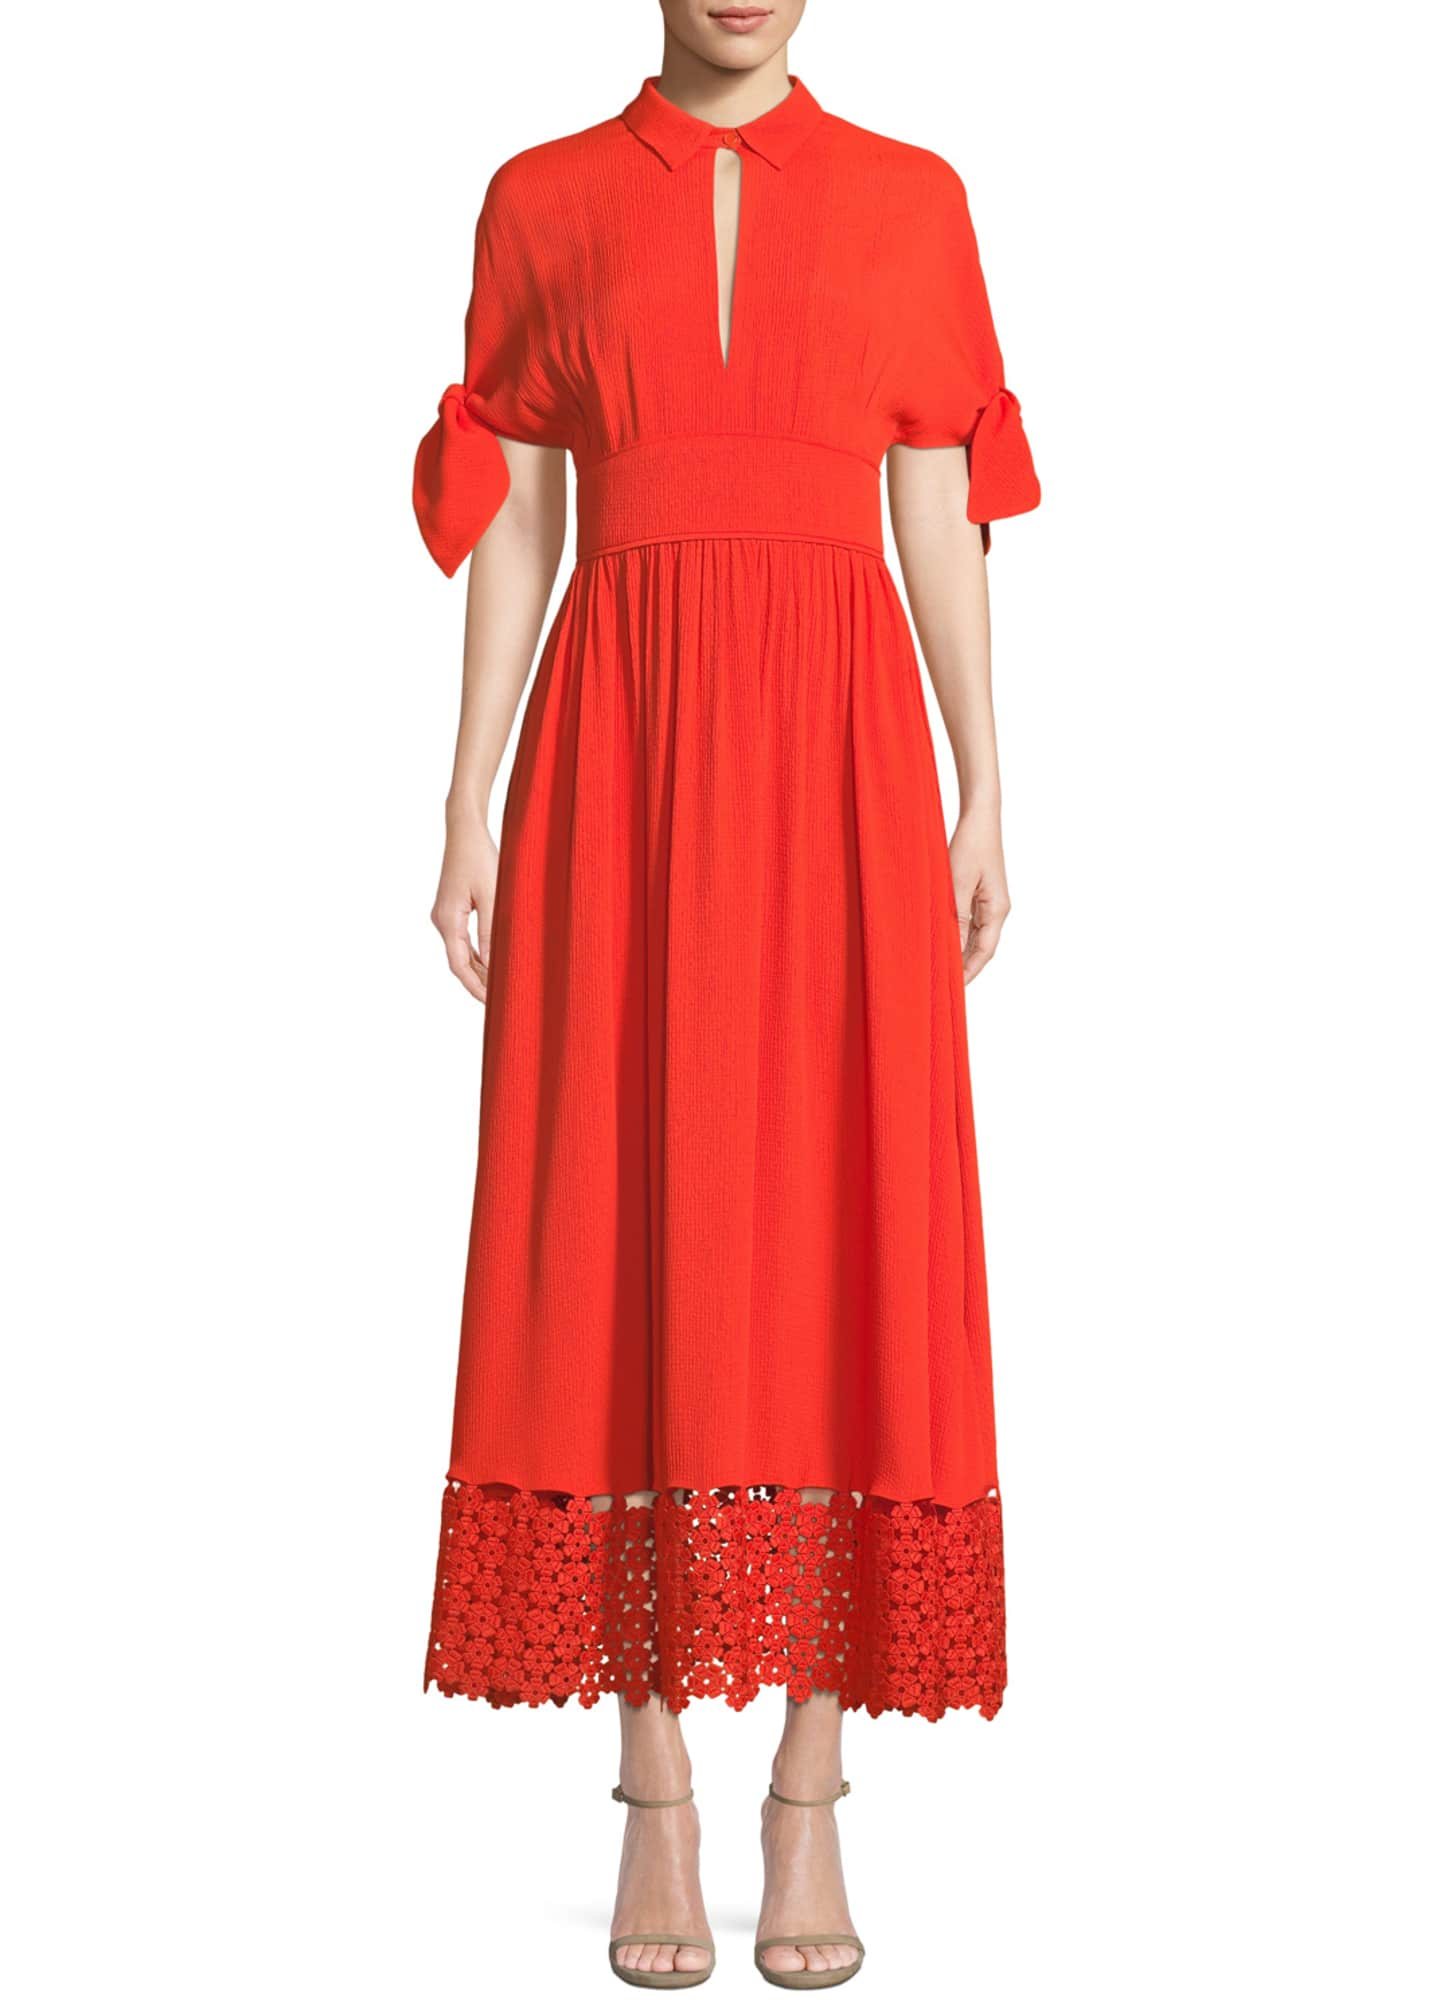 Lela Rose Textured Silk Cloque Tie-Sleeve Dress with